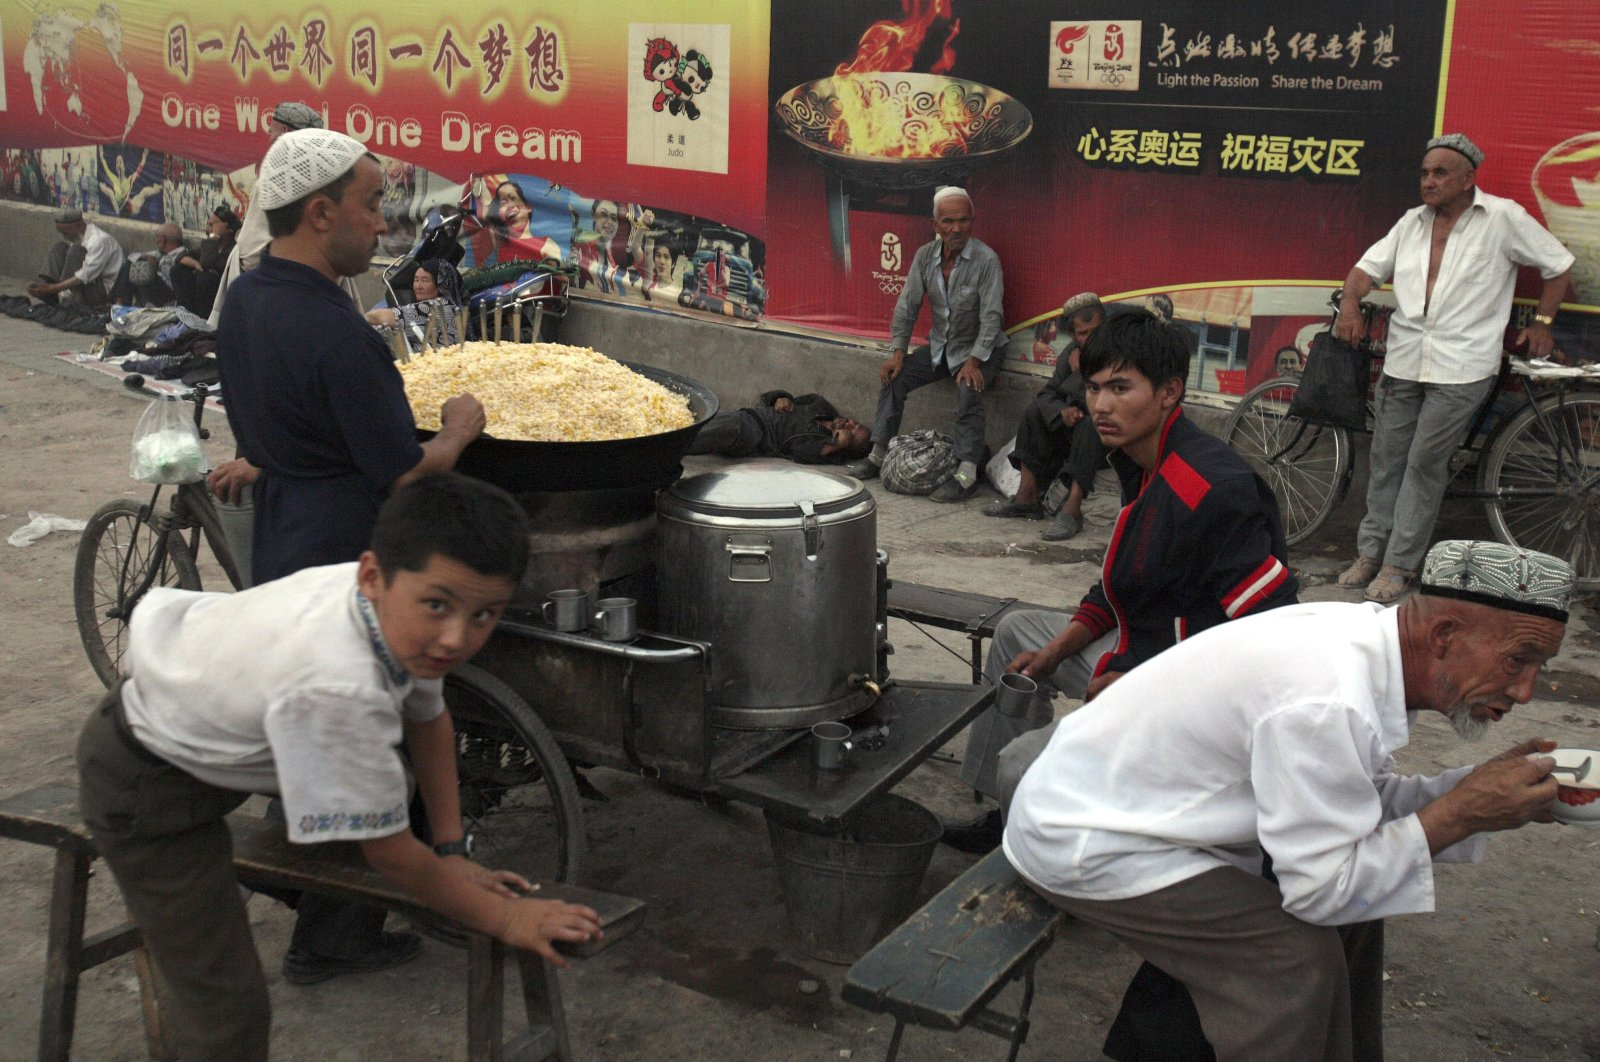 Uighurs rest near a food stall and Beijing Olympic Games billboards in Kashgar in western Xinjiang province, China, Aug. 6, 2008. (AP Photo)